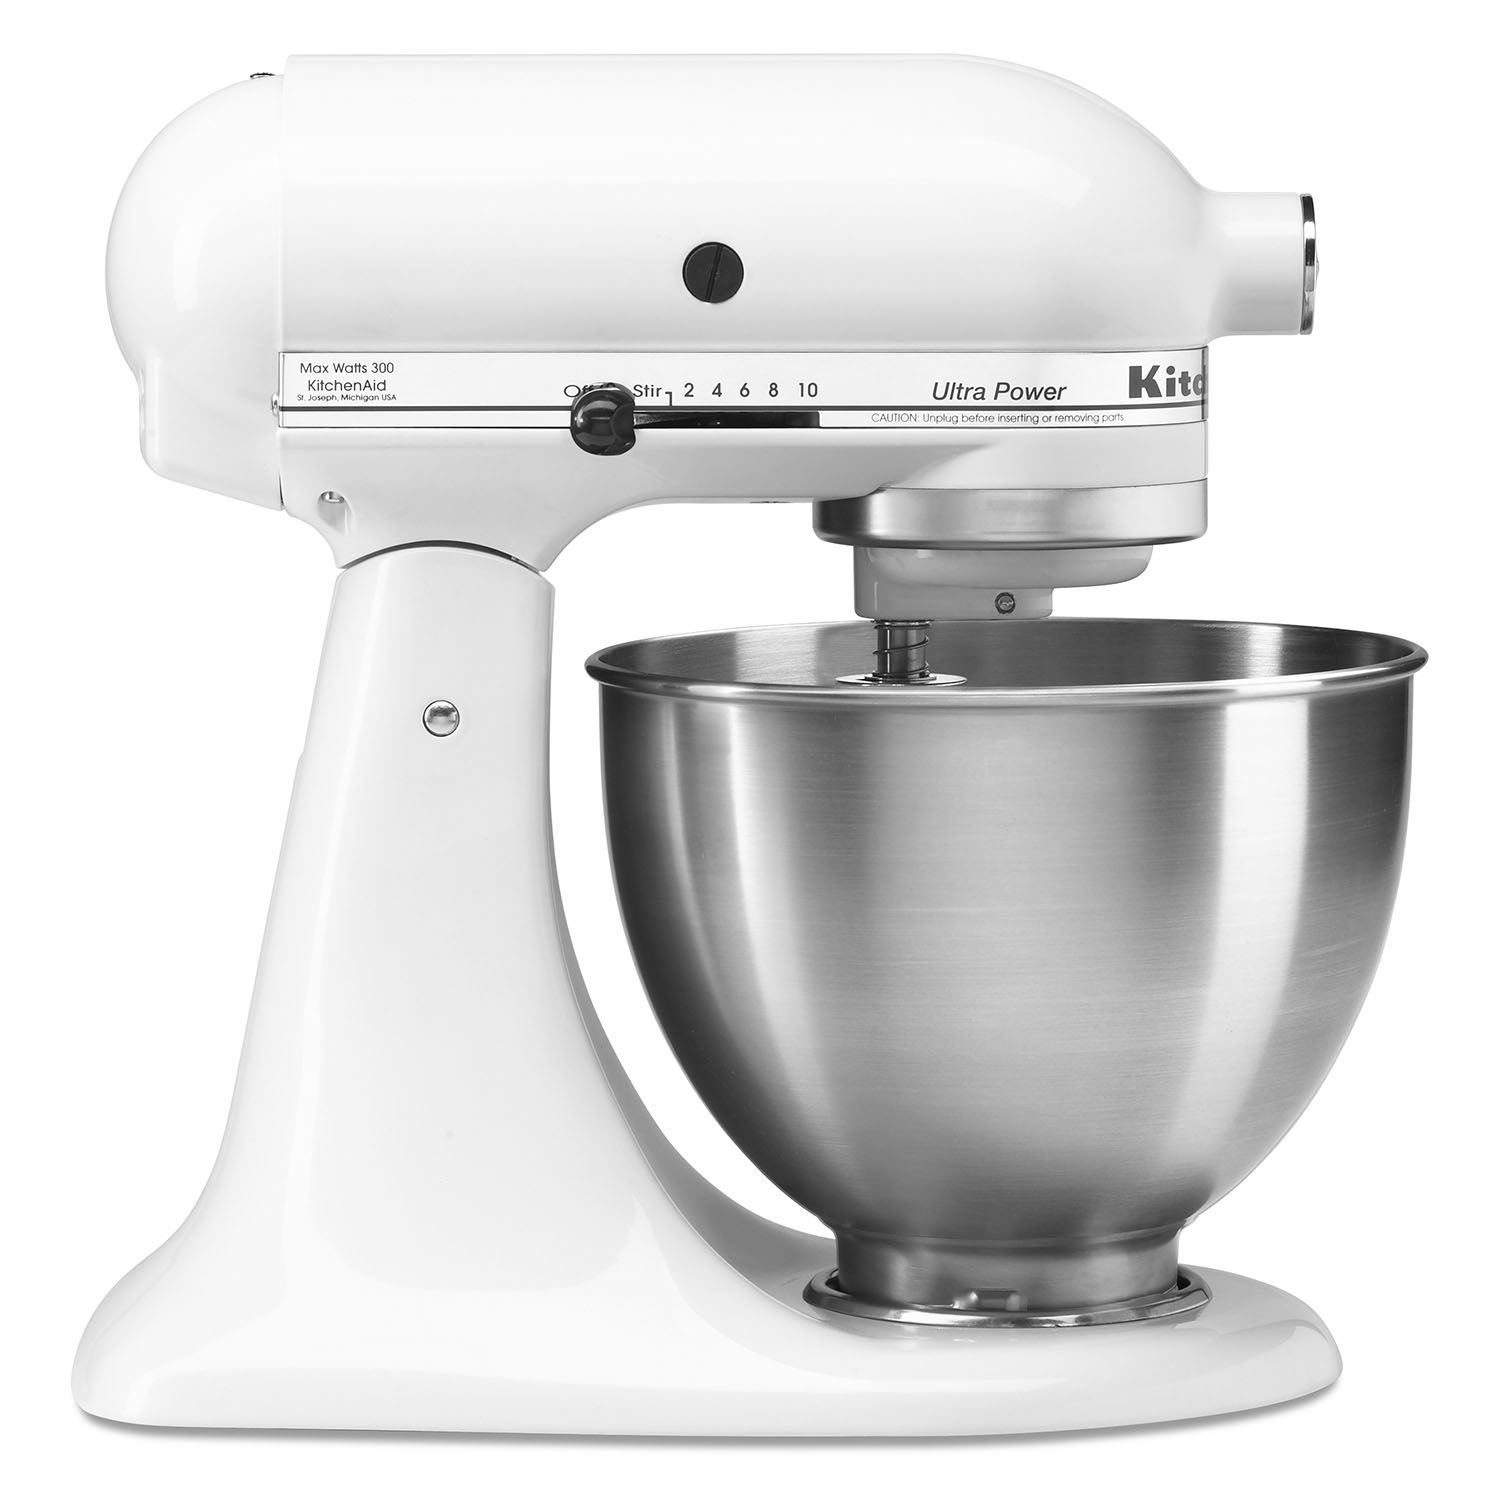 Kitchenaid 4.5 Quart Tilt Stand Mixer - White